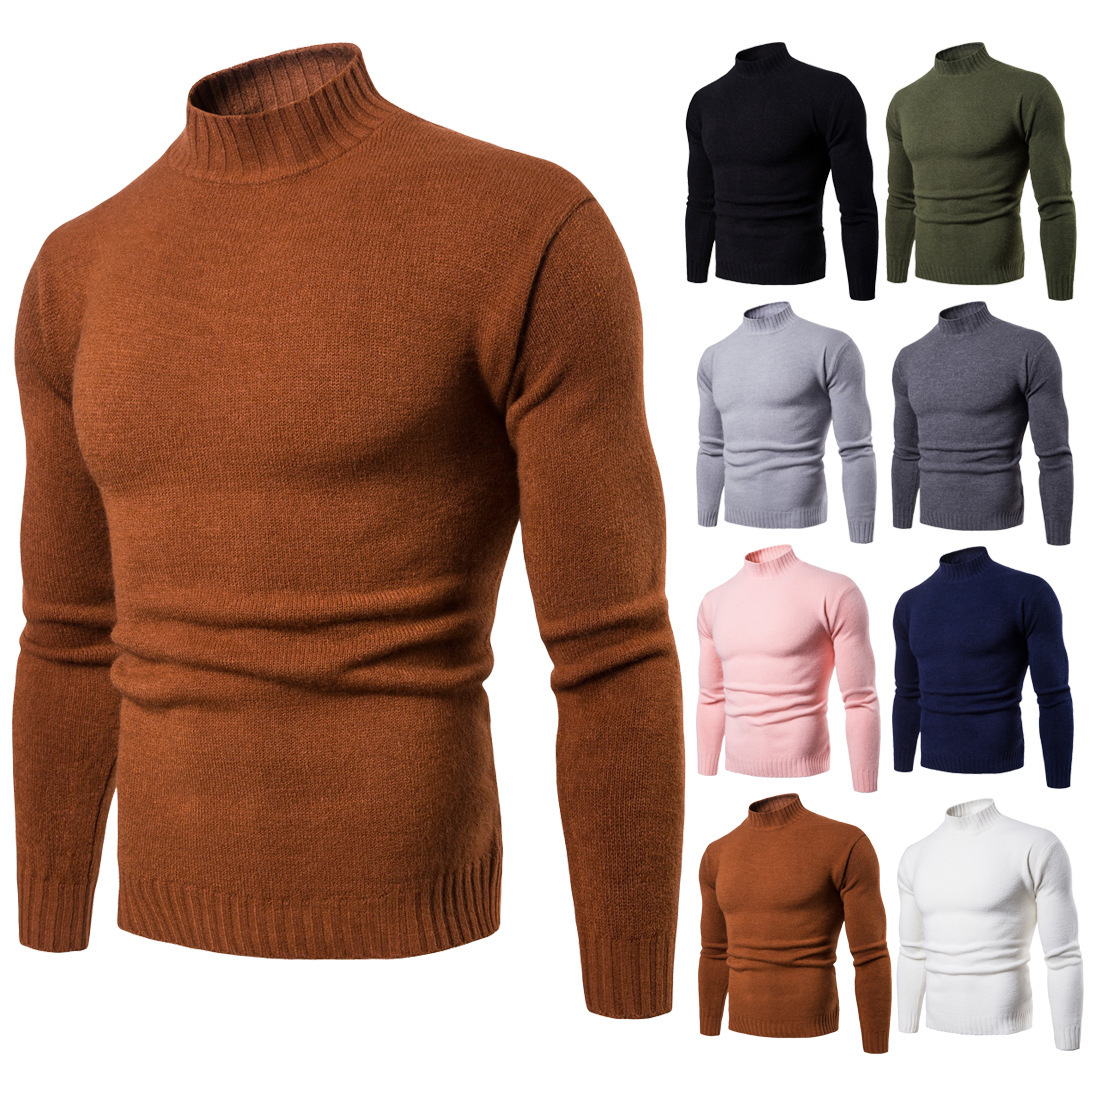 2018 autumn and winter foreign trade men's necked sweater knitted sweater with high necked necked shirt Hat Leisure time